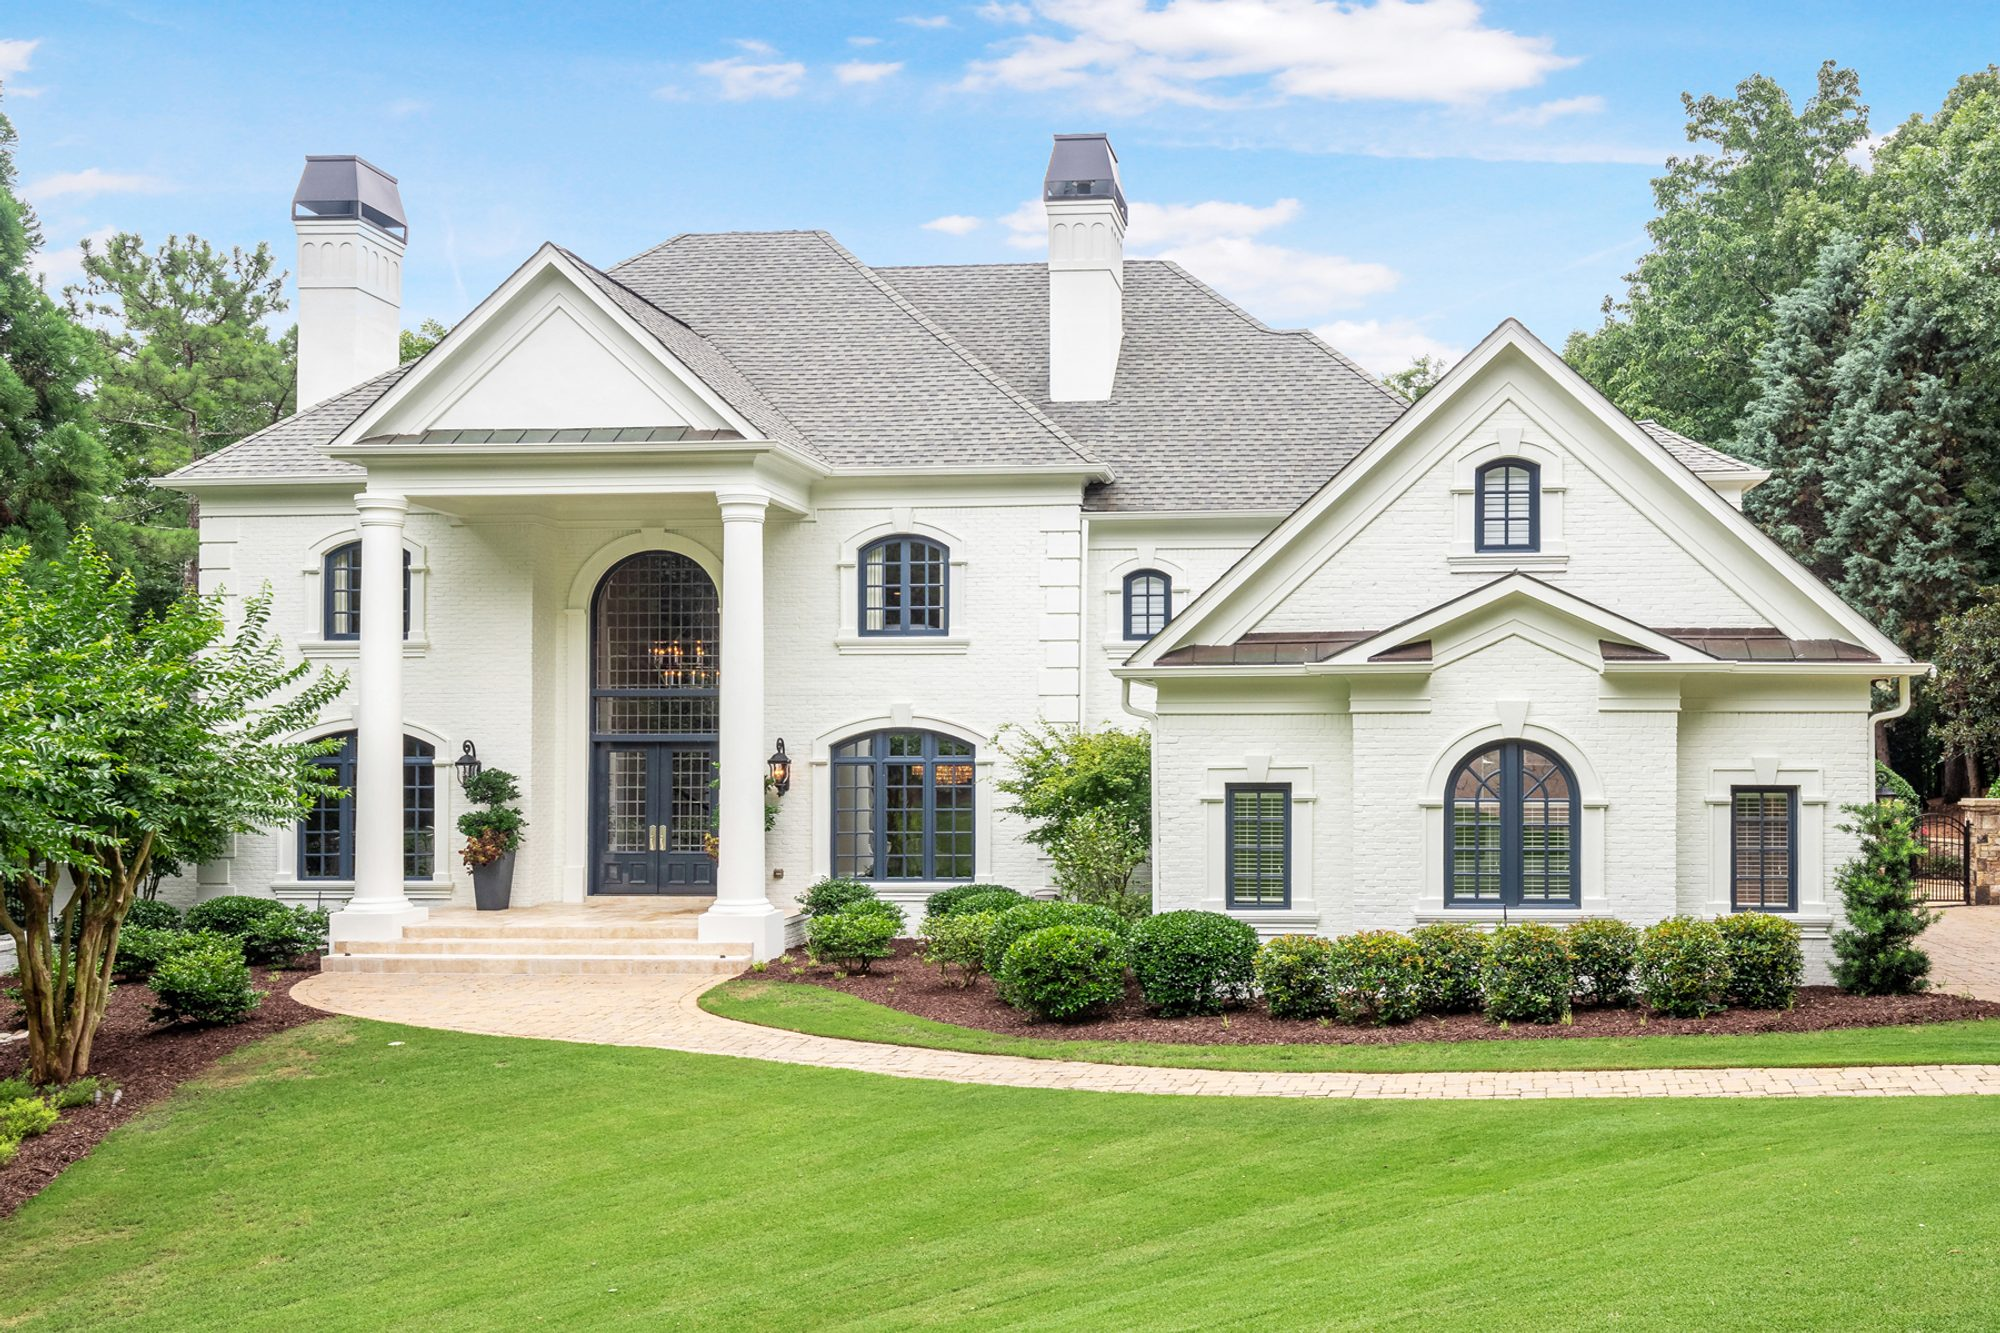 Traditional style red brick home painted white with blue trim and huge columns.